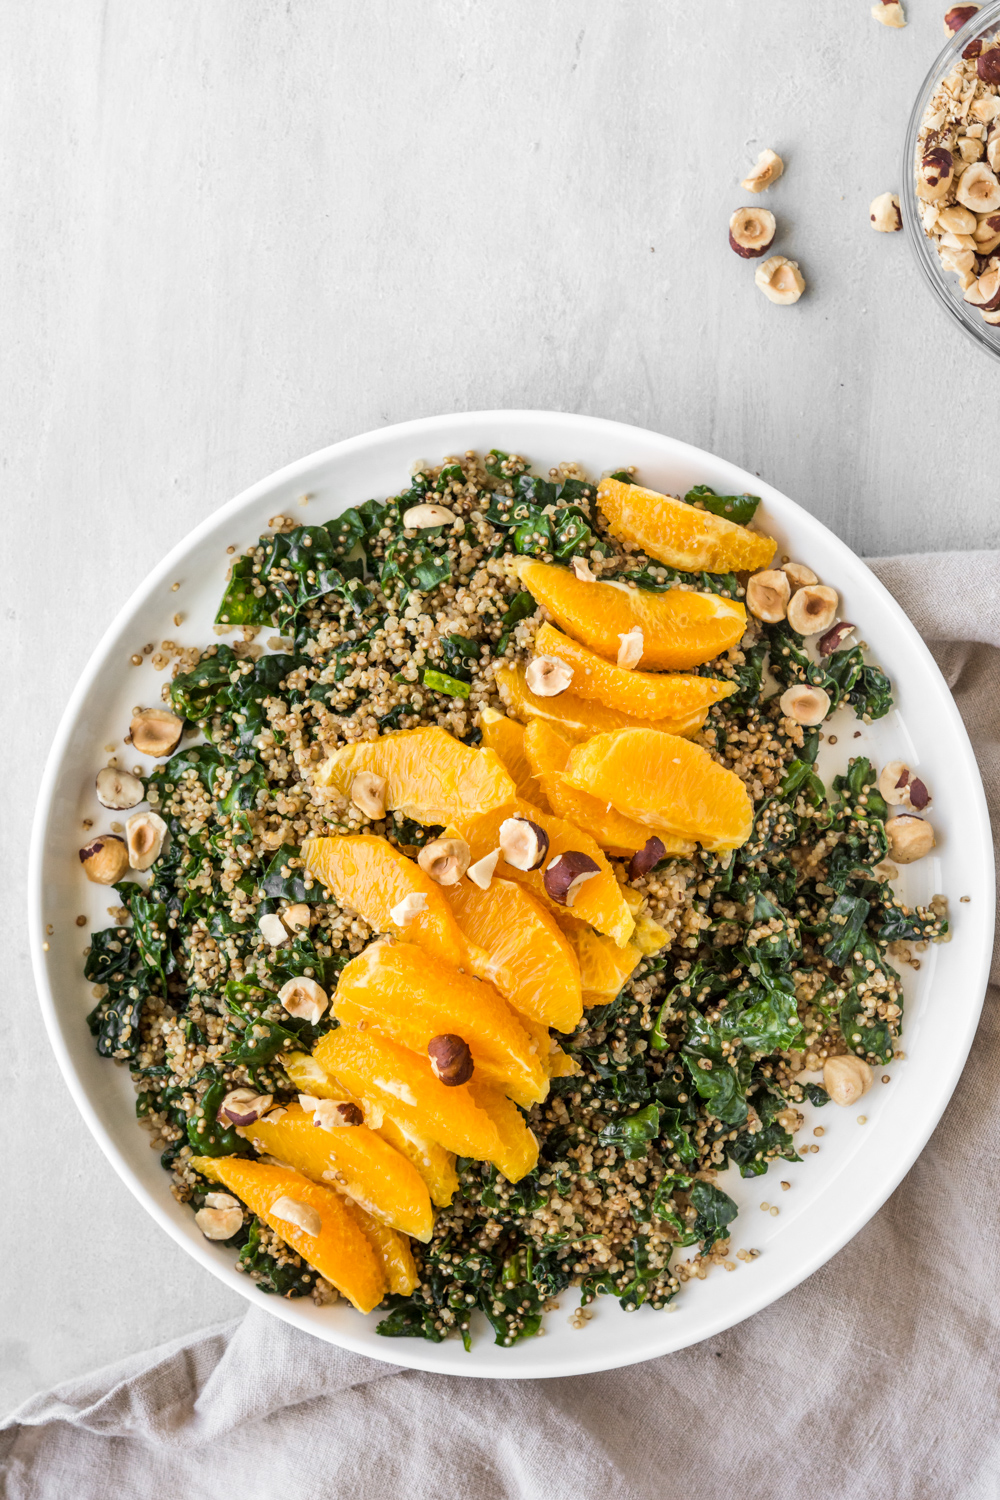 toasted quinoa and kale salad.jpg